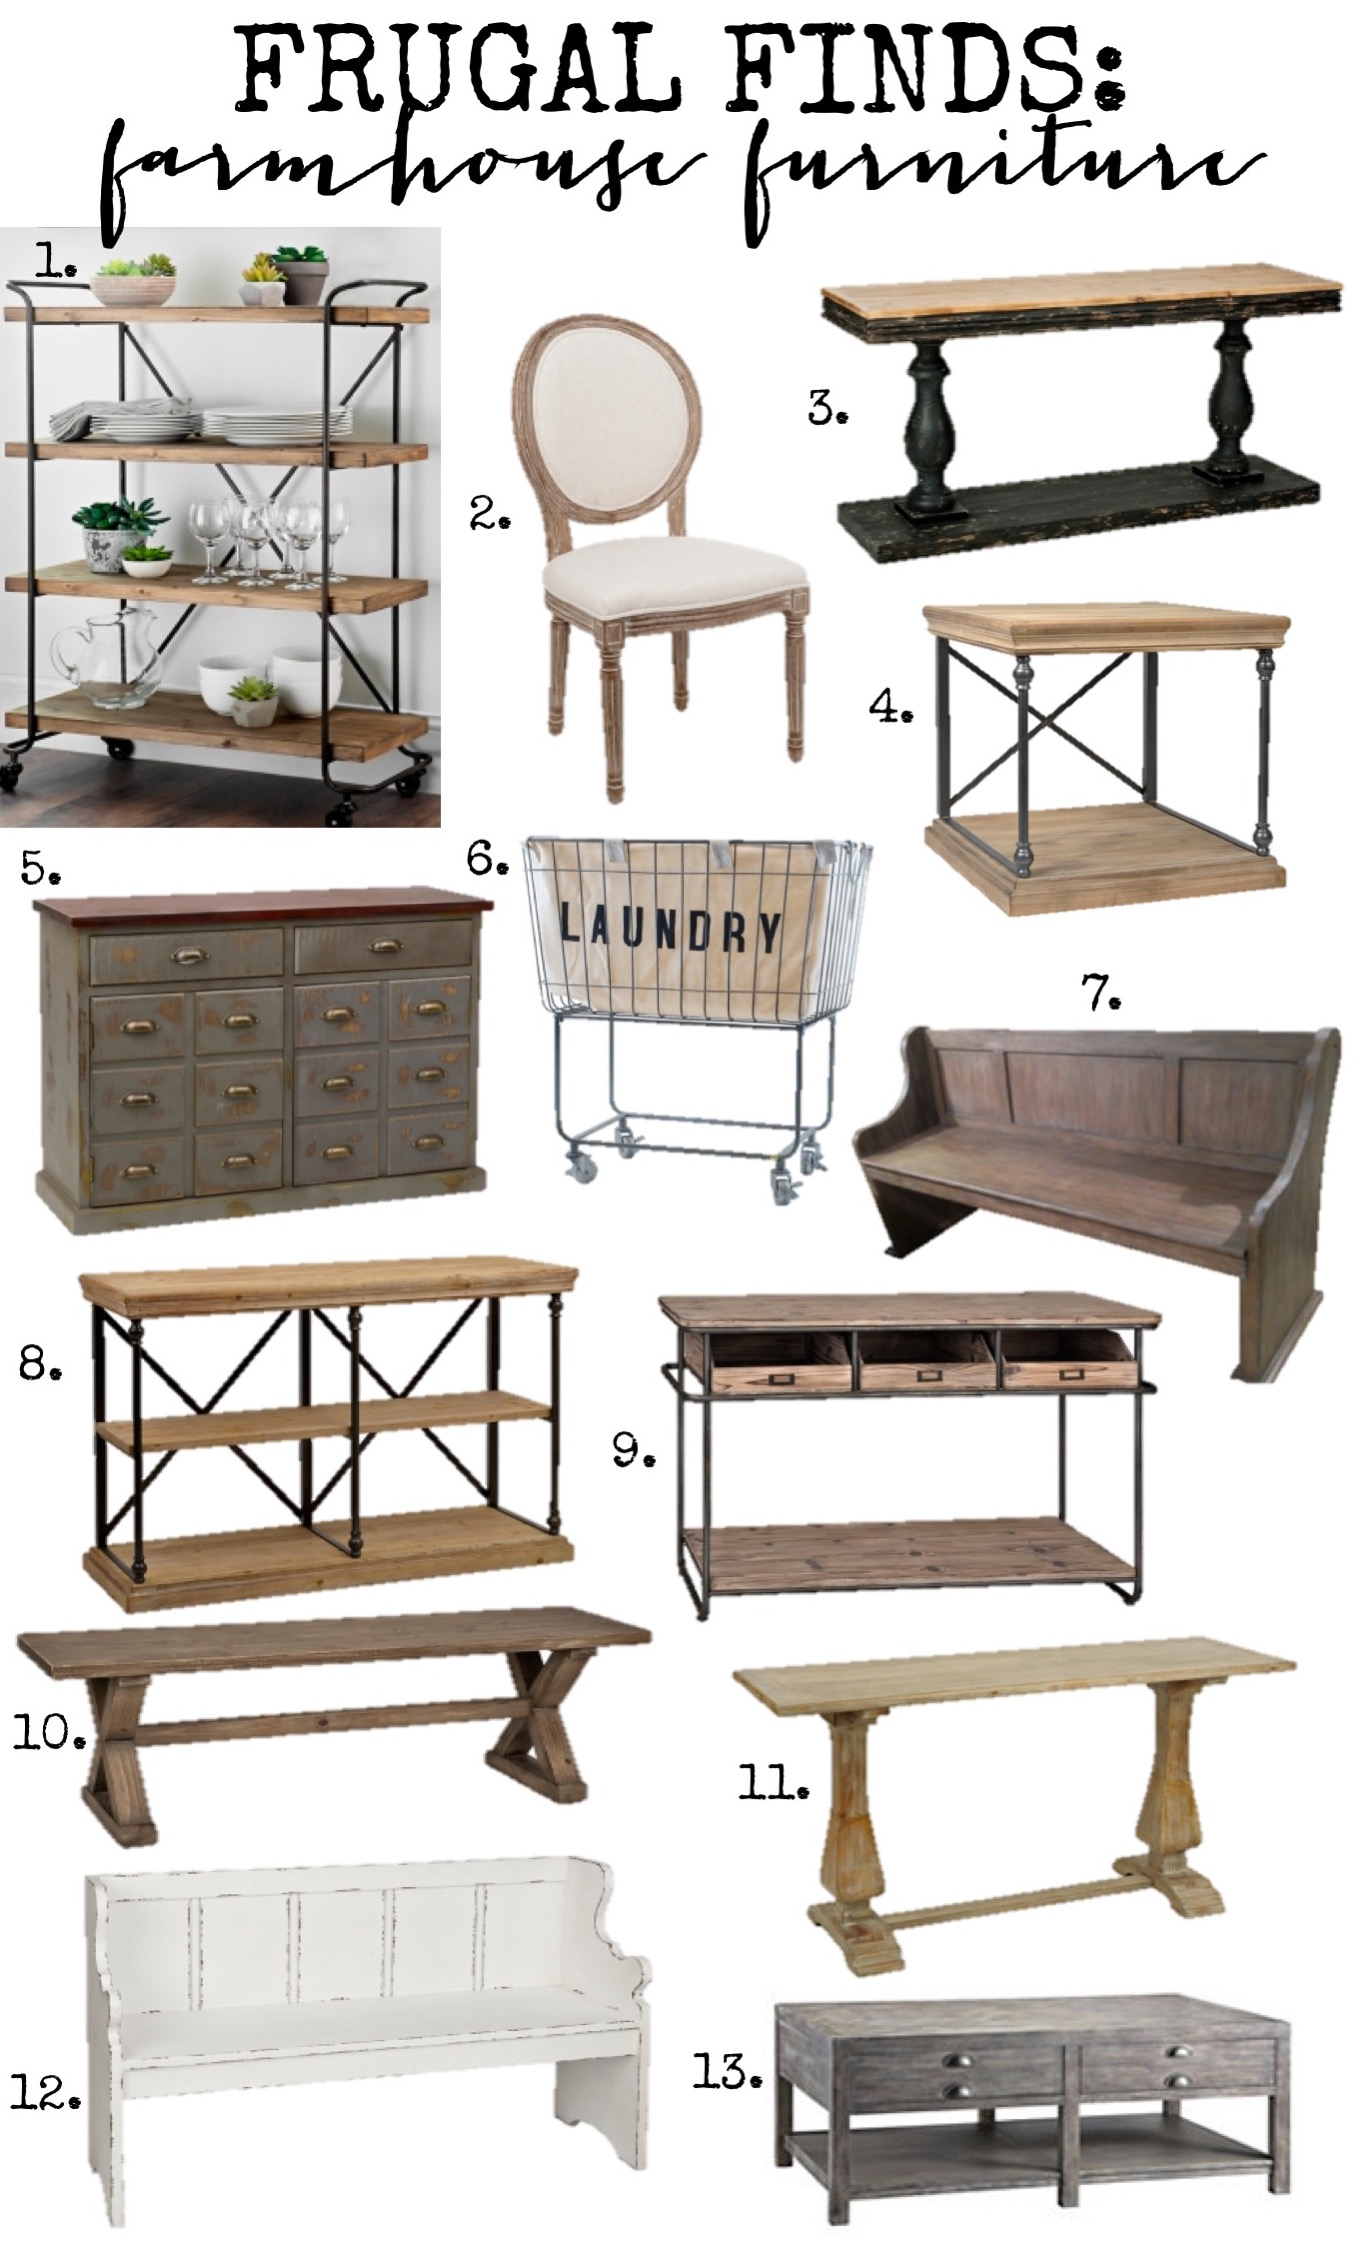 I Wanted To Share Some Of Our Finds With Yall Enjoy This Edition Frugal Farmhouse Furniture Home Decor